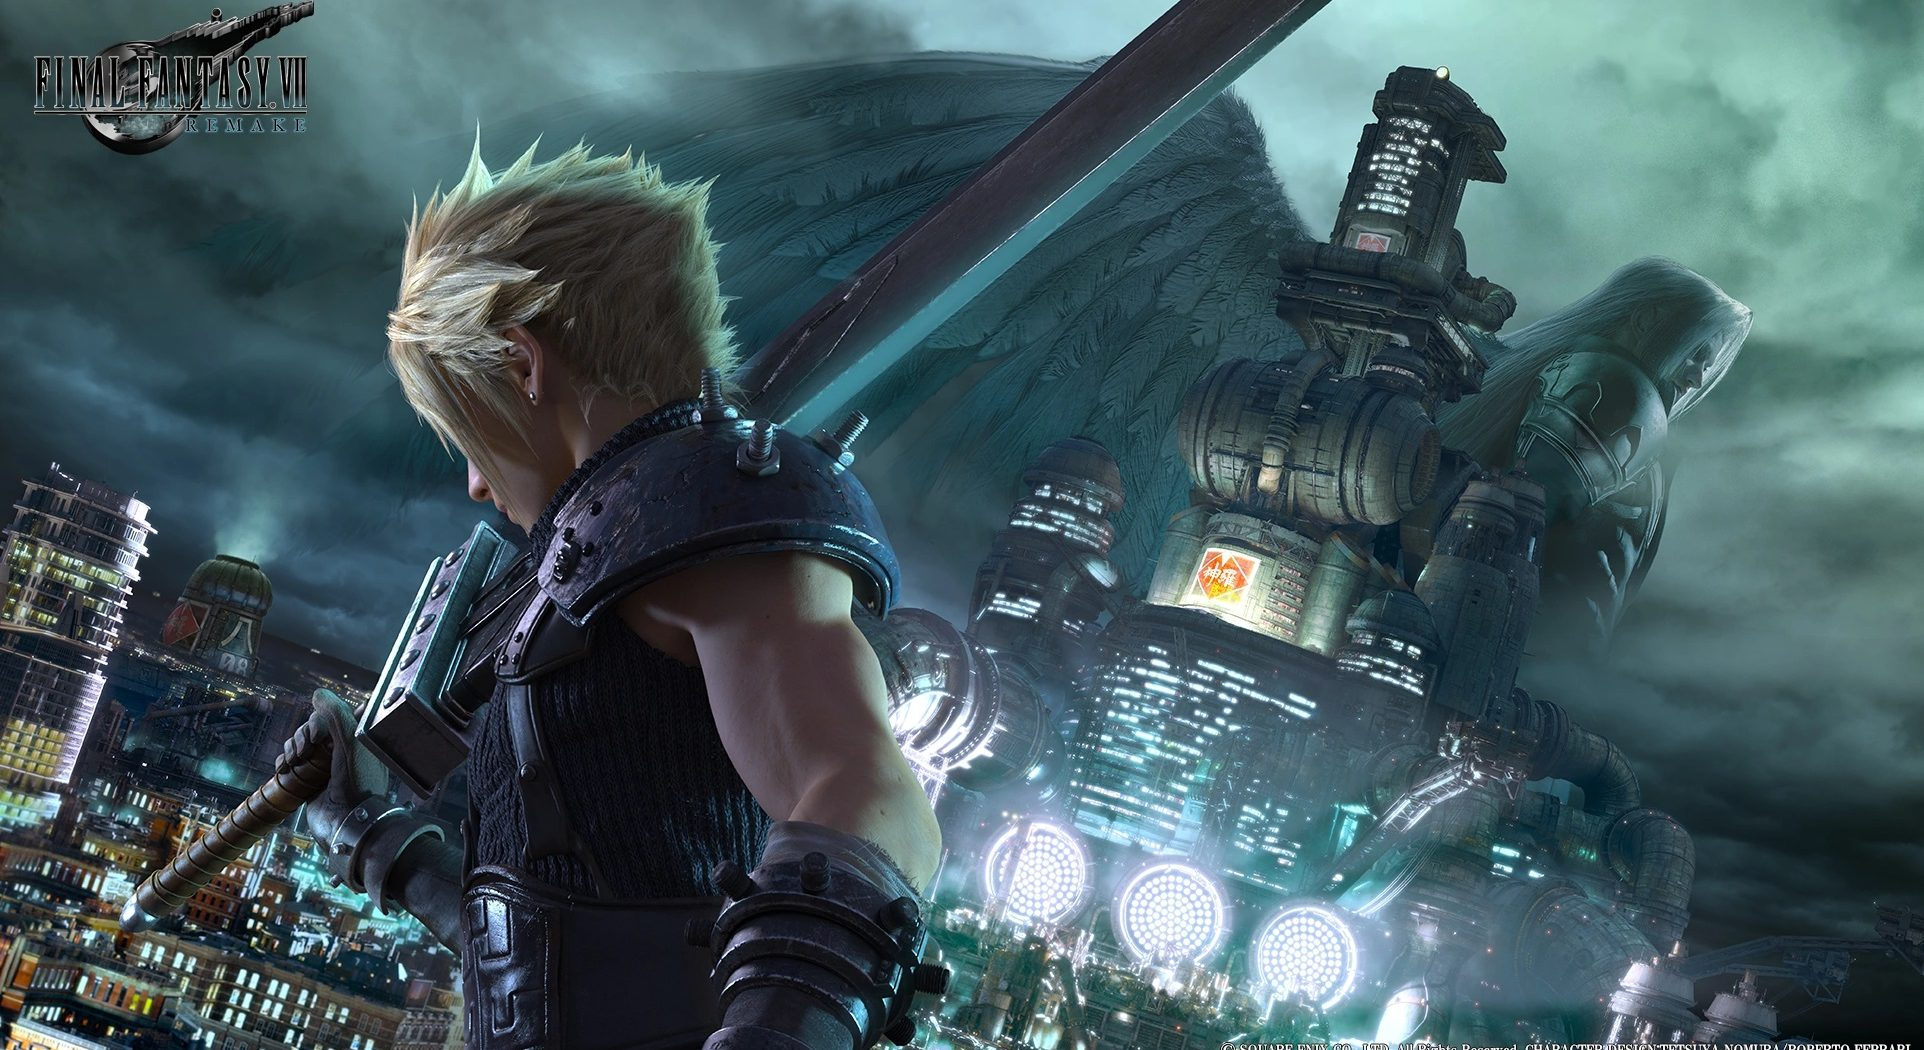 Remake de Final Fantasy VII será superior ao original, almeja Square-Enix